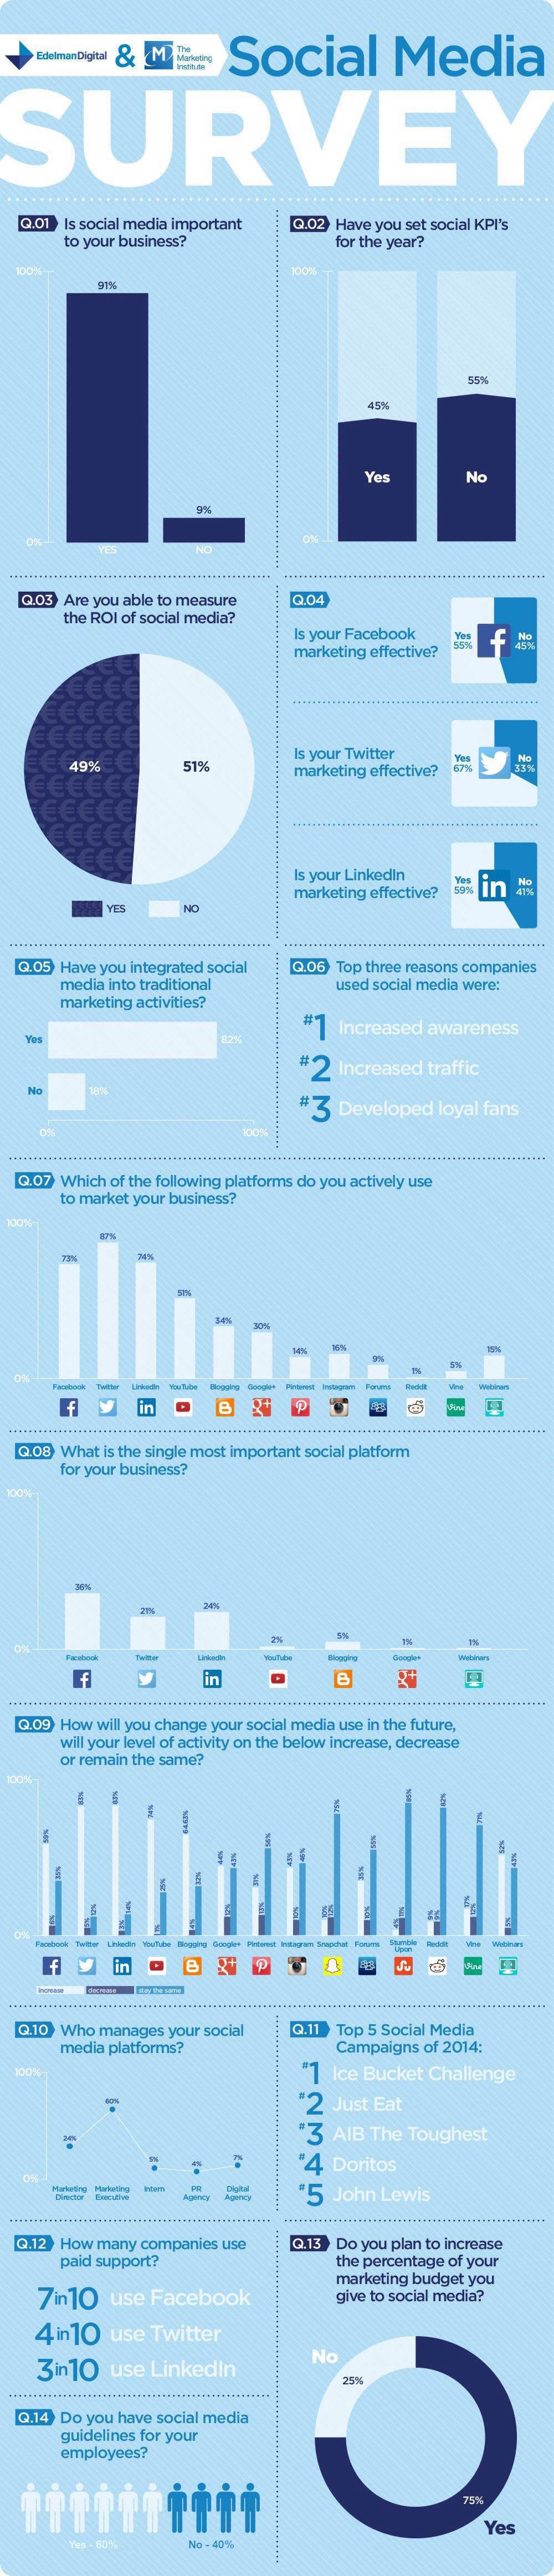 Social Media Survey #infographic